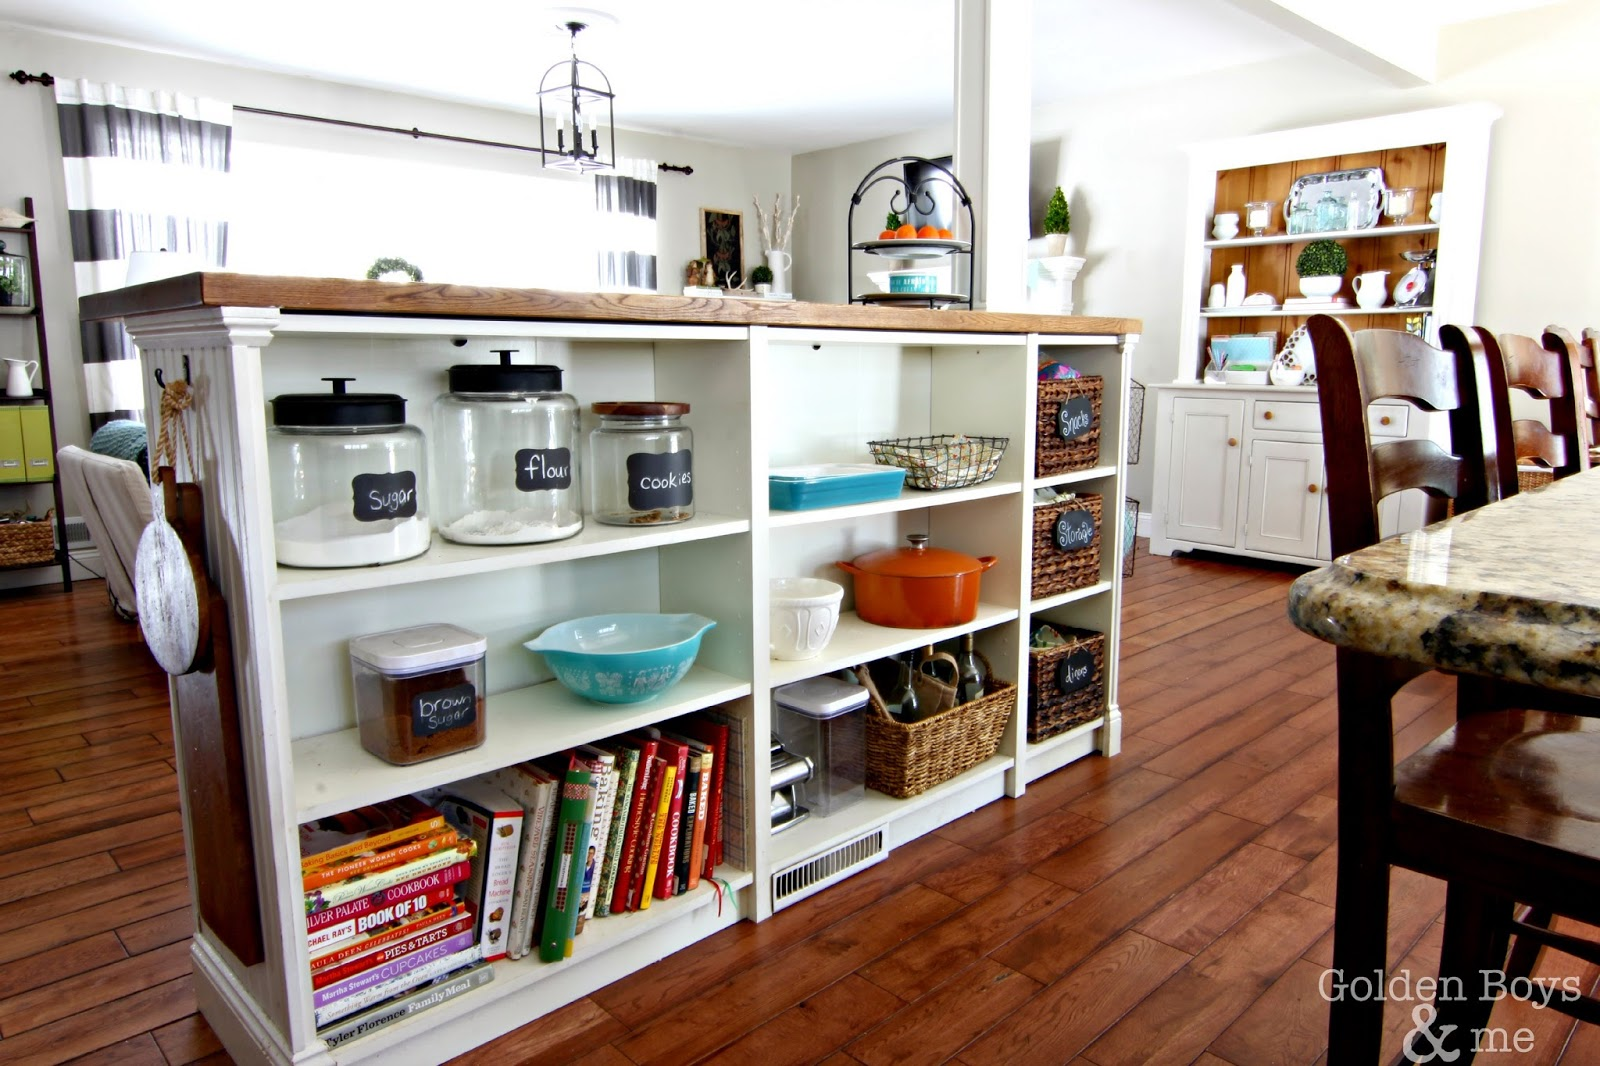 Billy bookshelf used for kitchen storage-www.goldenboysandme.com